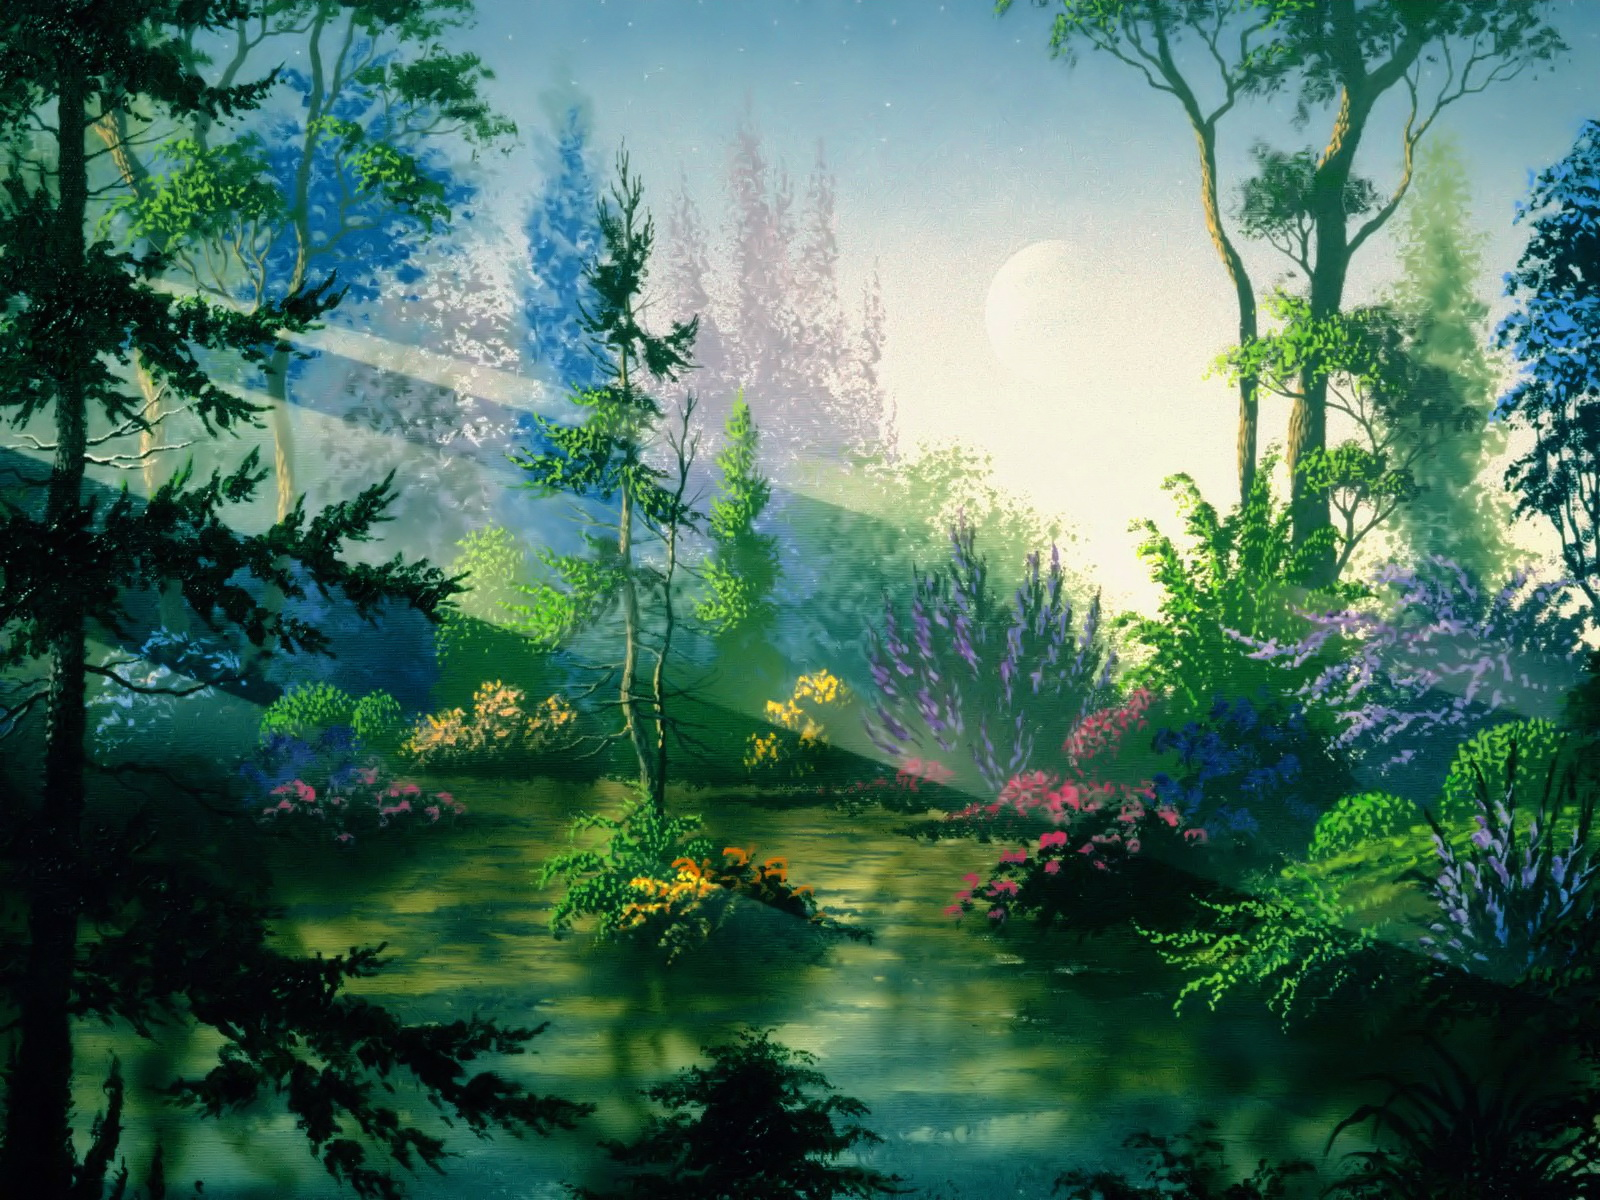 1600x1200 Fantasy forest desktop PC and Mac wallpaper